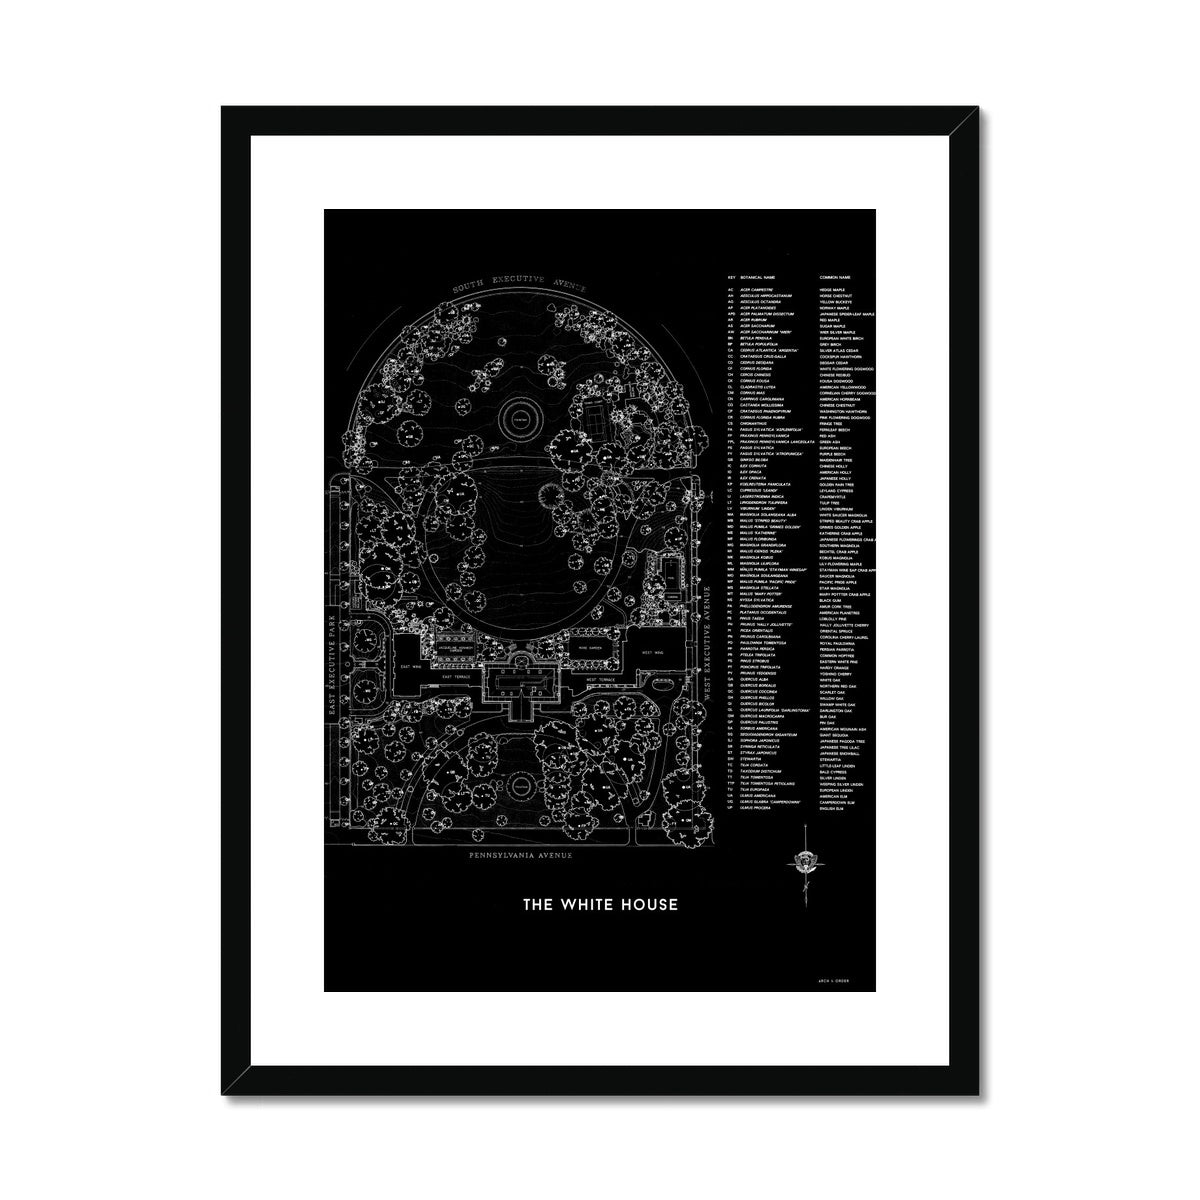 The White House Landscaping Plan - Black -  Framed & Mounted Print